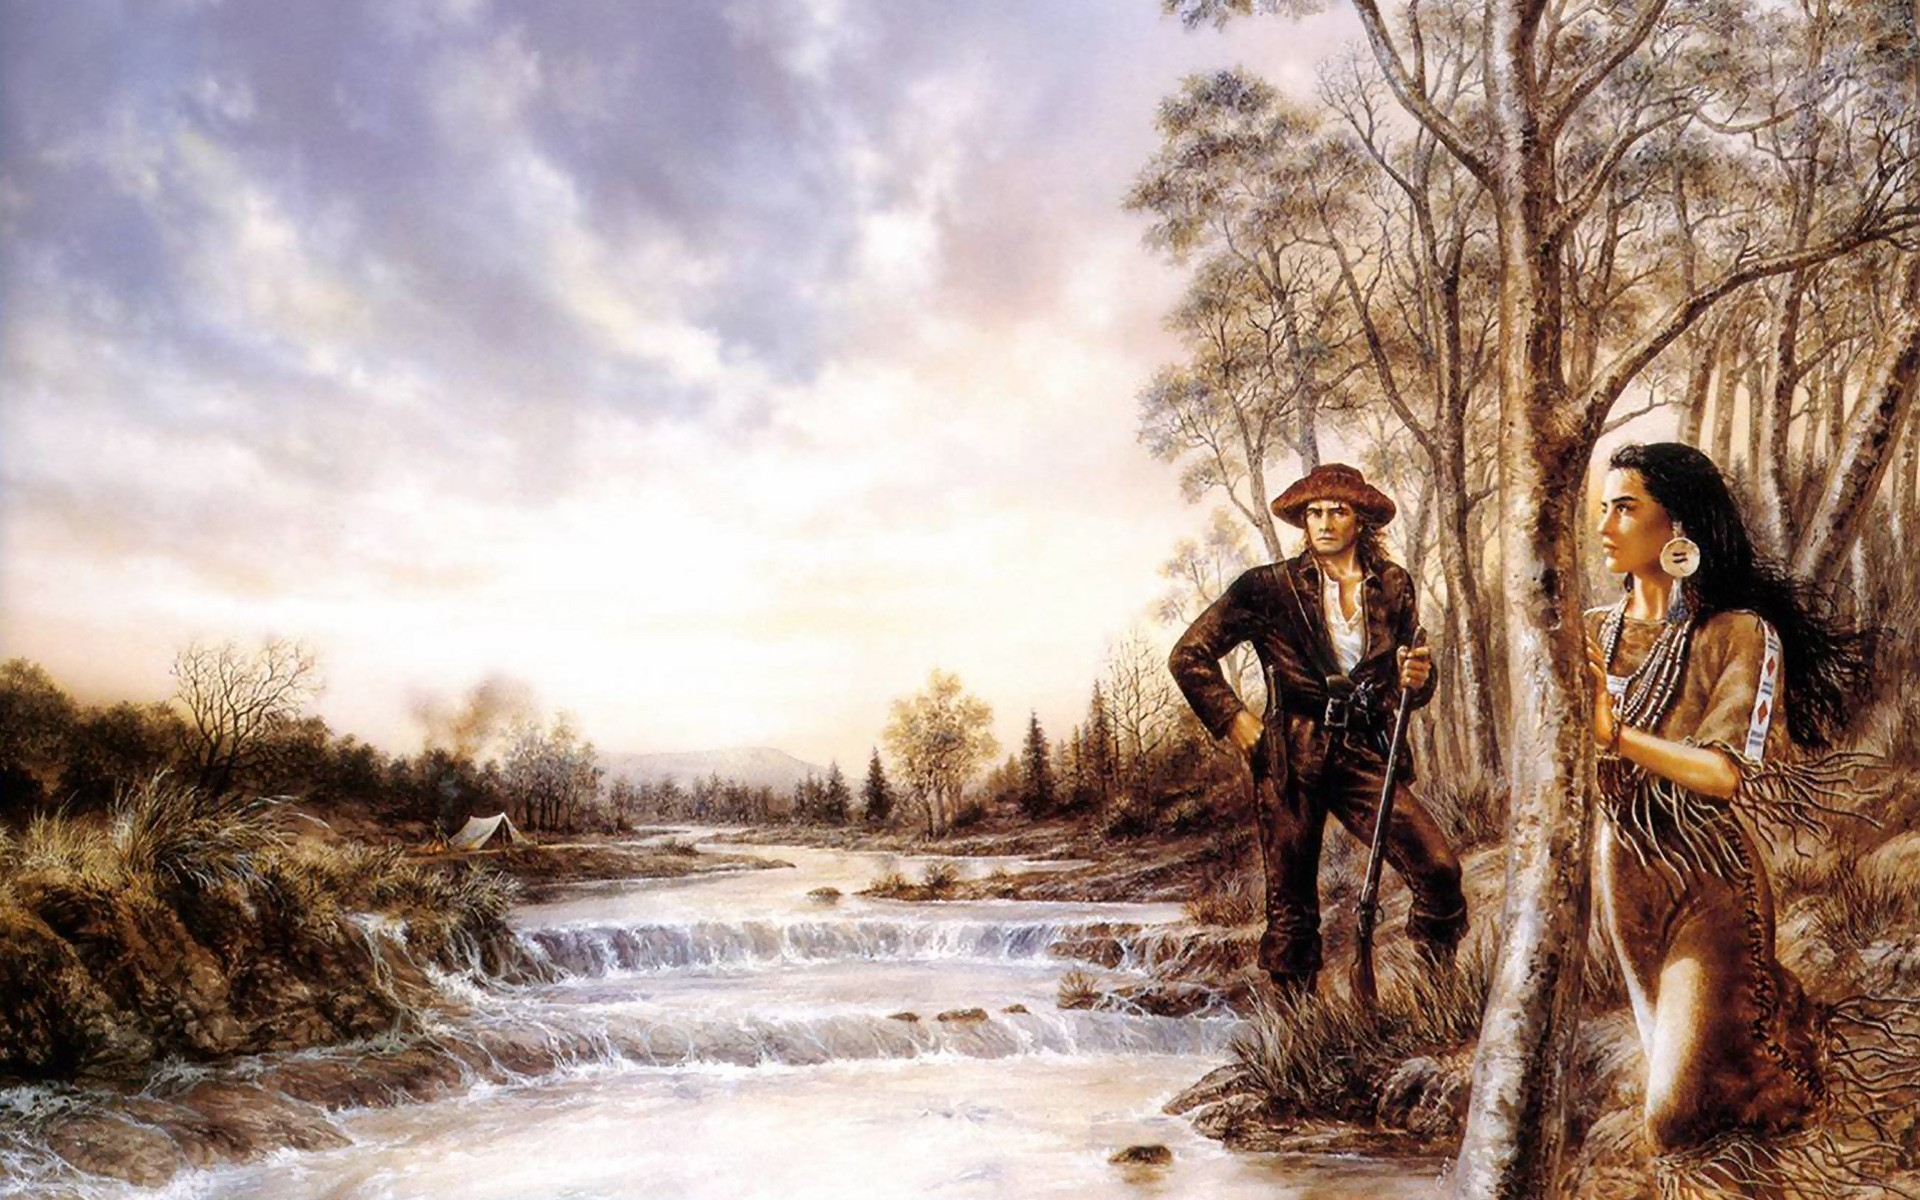 1920x1200 Artistic - Native American Indian American West Woman Man Gun River Stream  Landscape Cloud Wallpaper